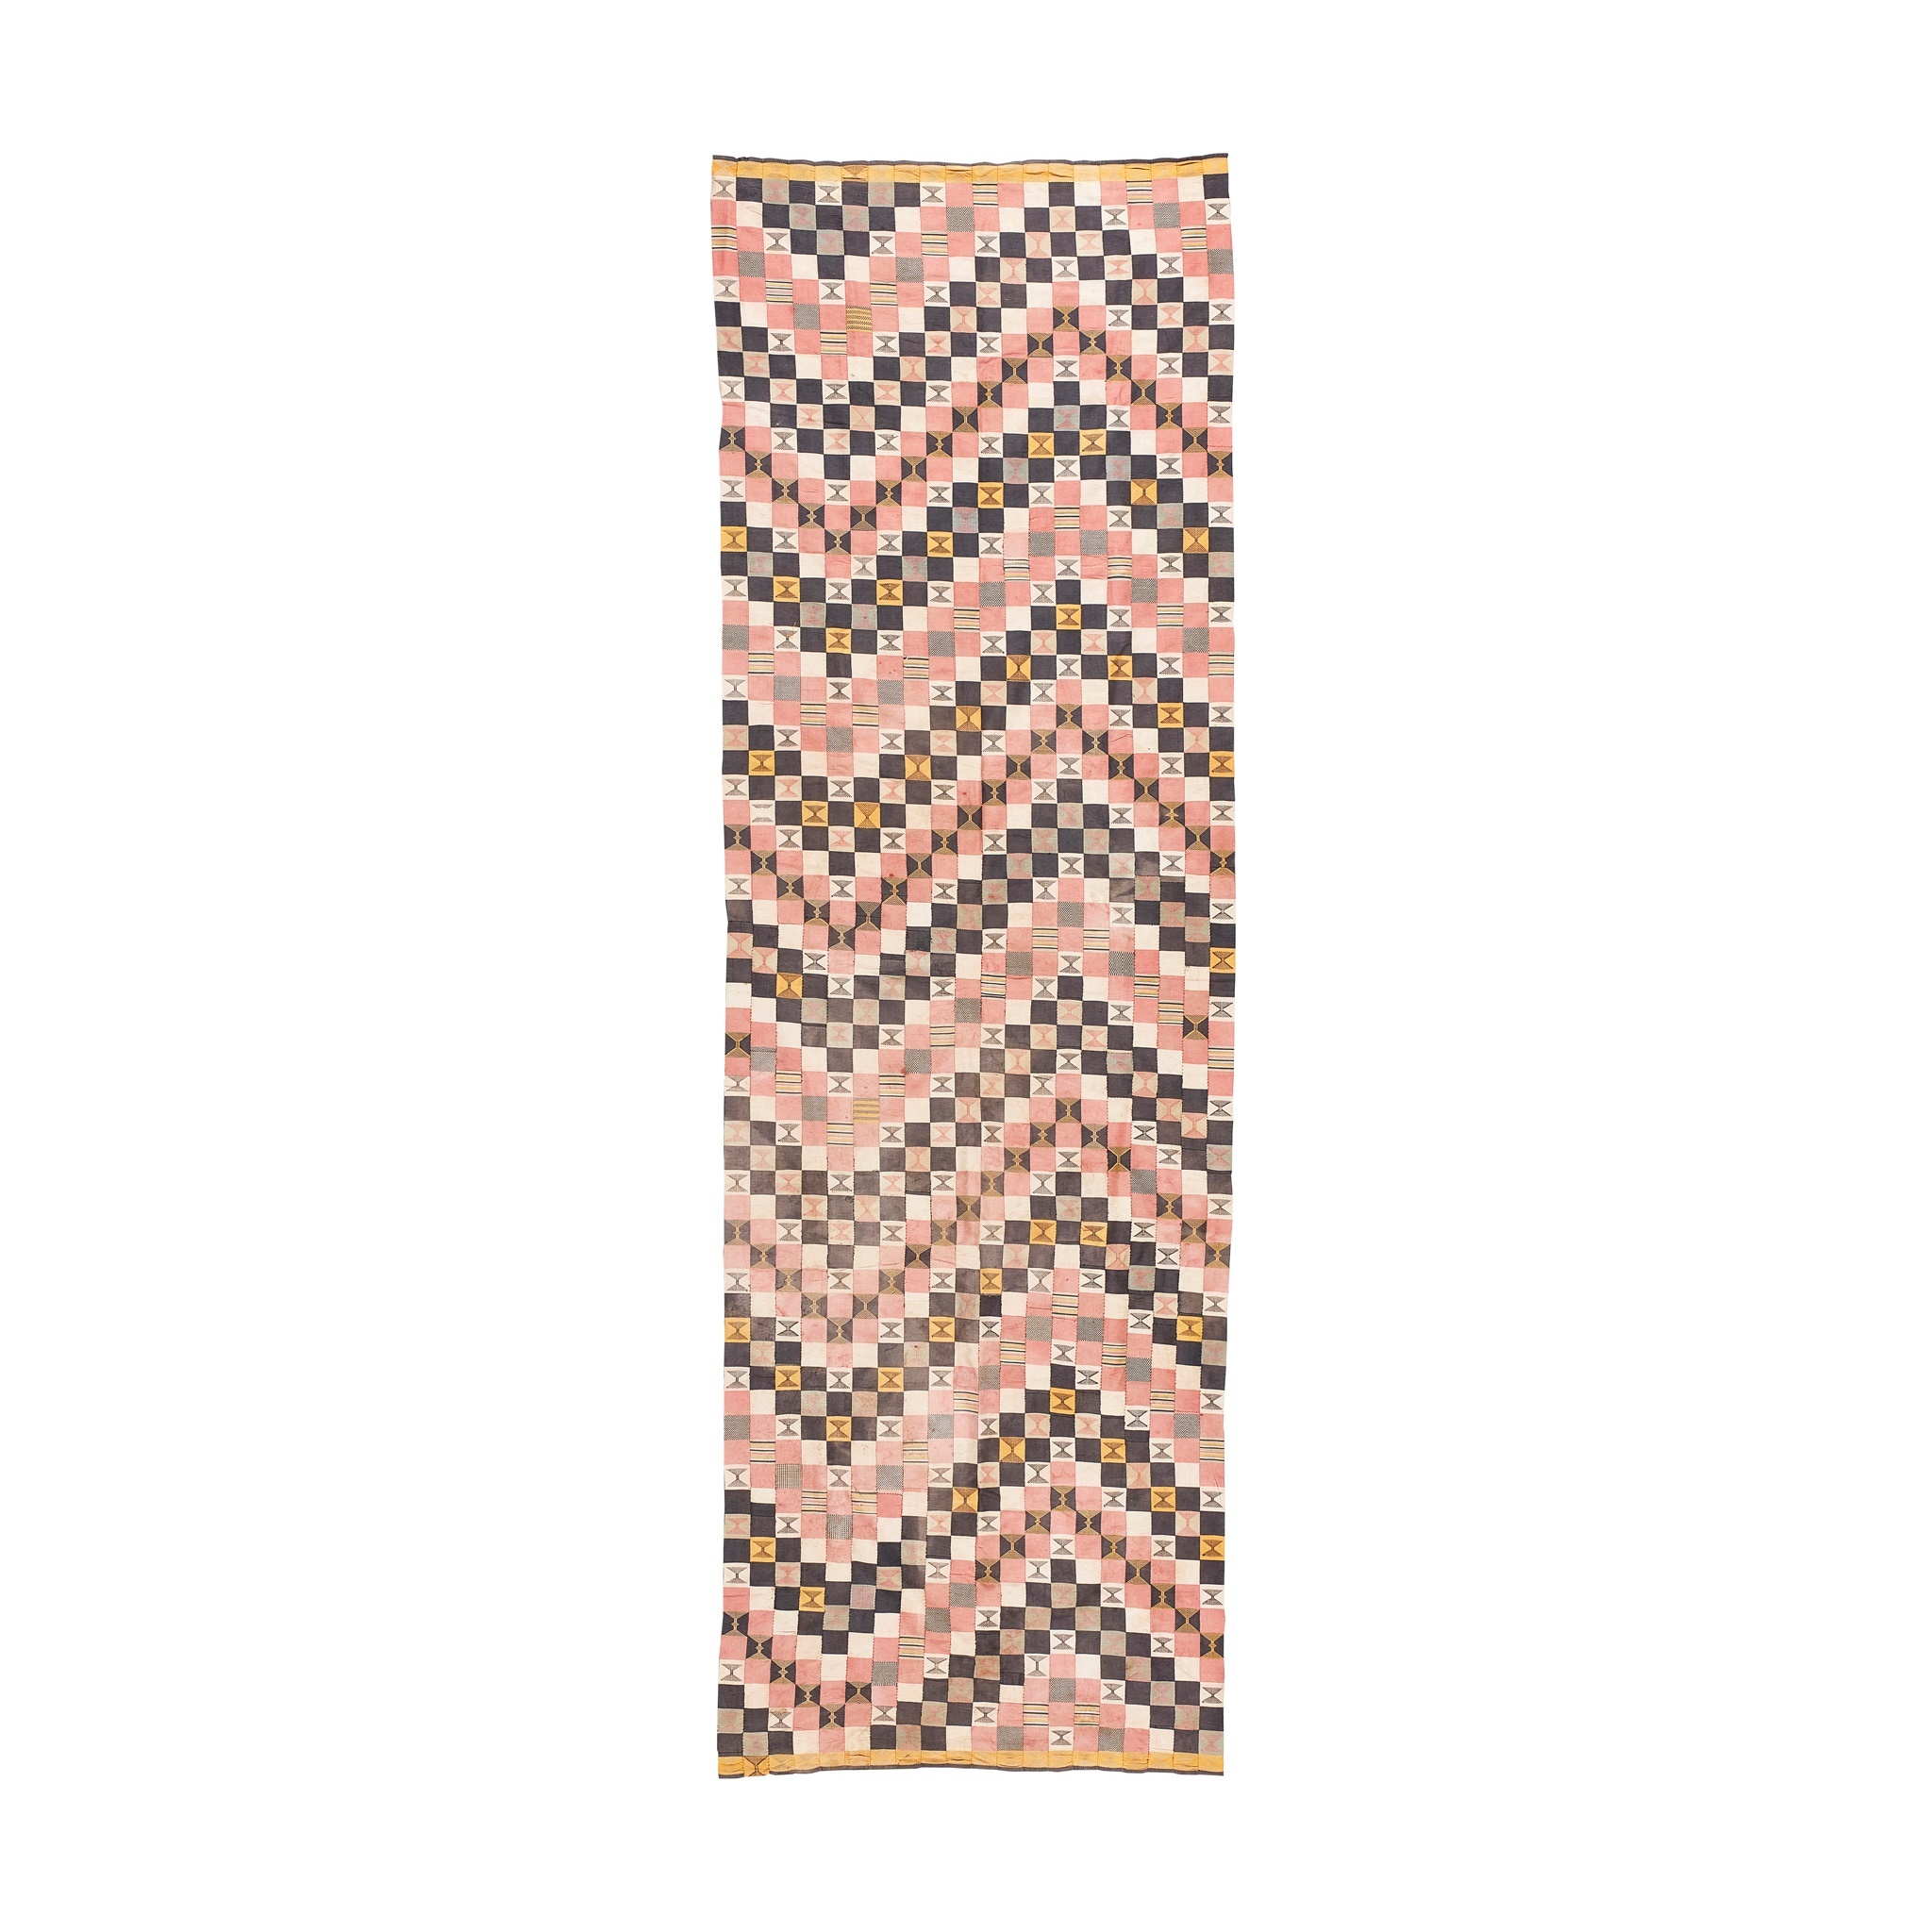 LOT 185 | EWE MAN'S CLOTH | EASTERN GHANA OR TOGO